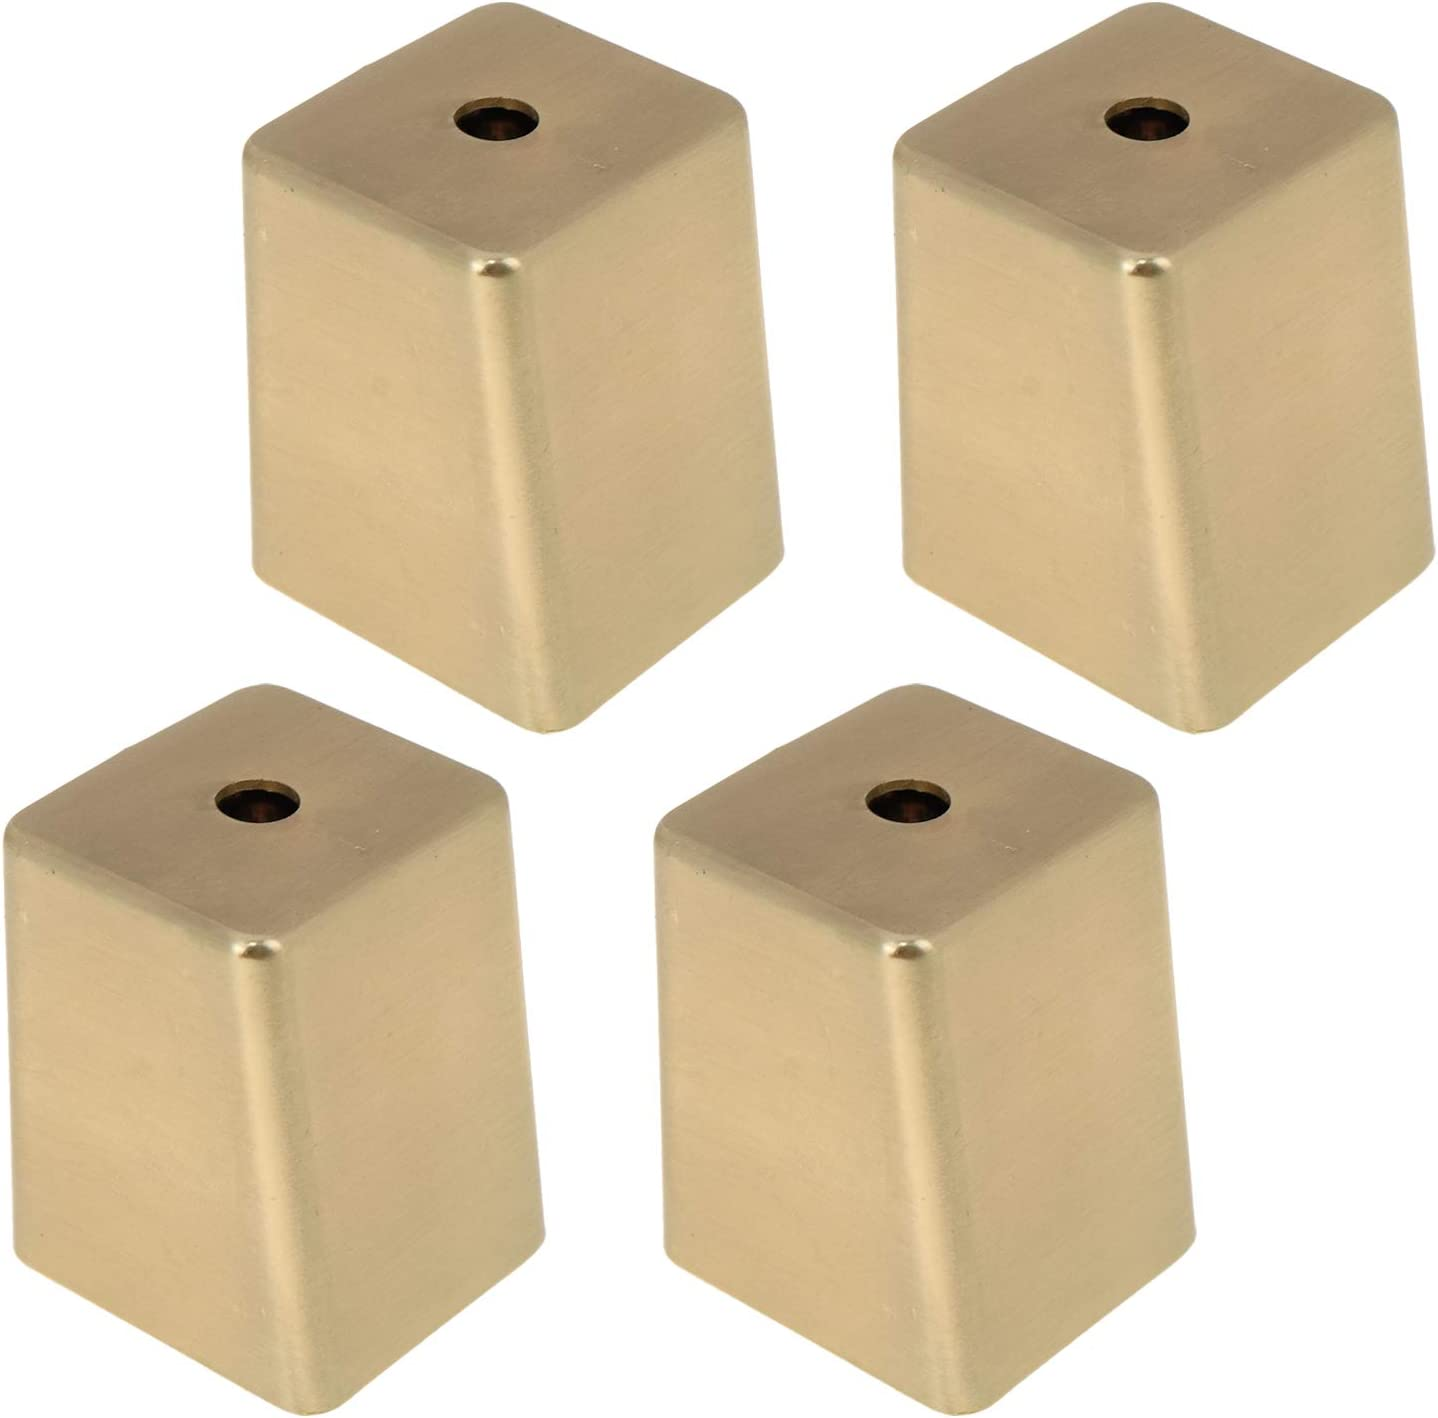 Furniture Chair Legs Caps Karcy Floor Protector Gold Trapezoid Shaped 1.02x1.02